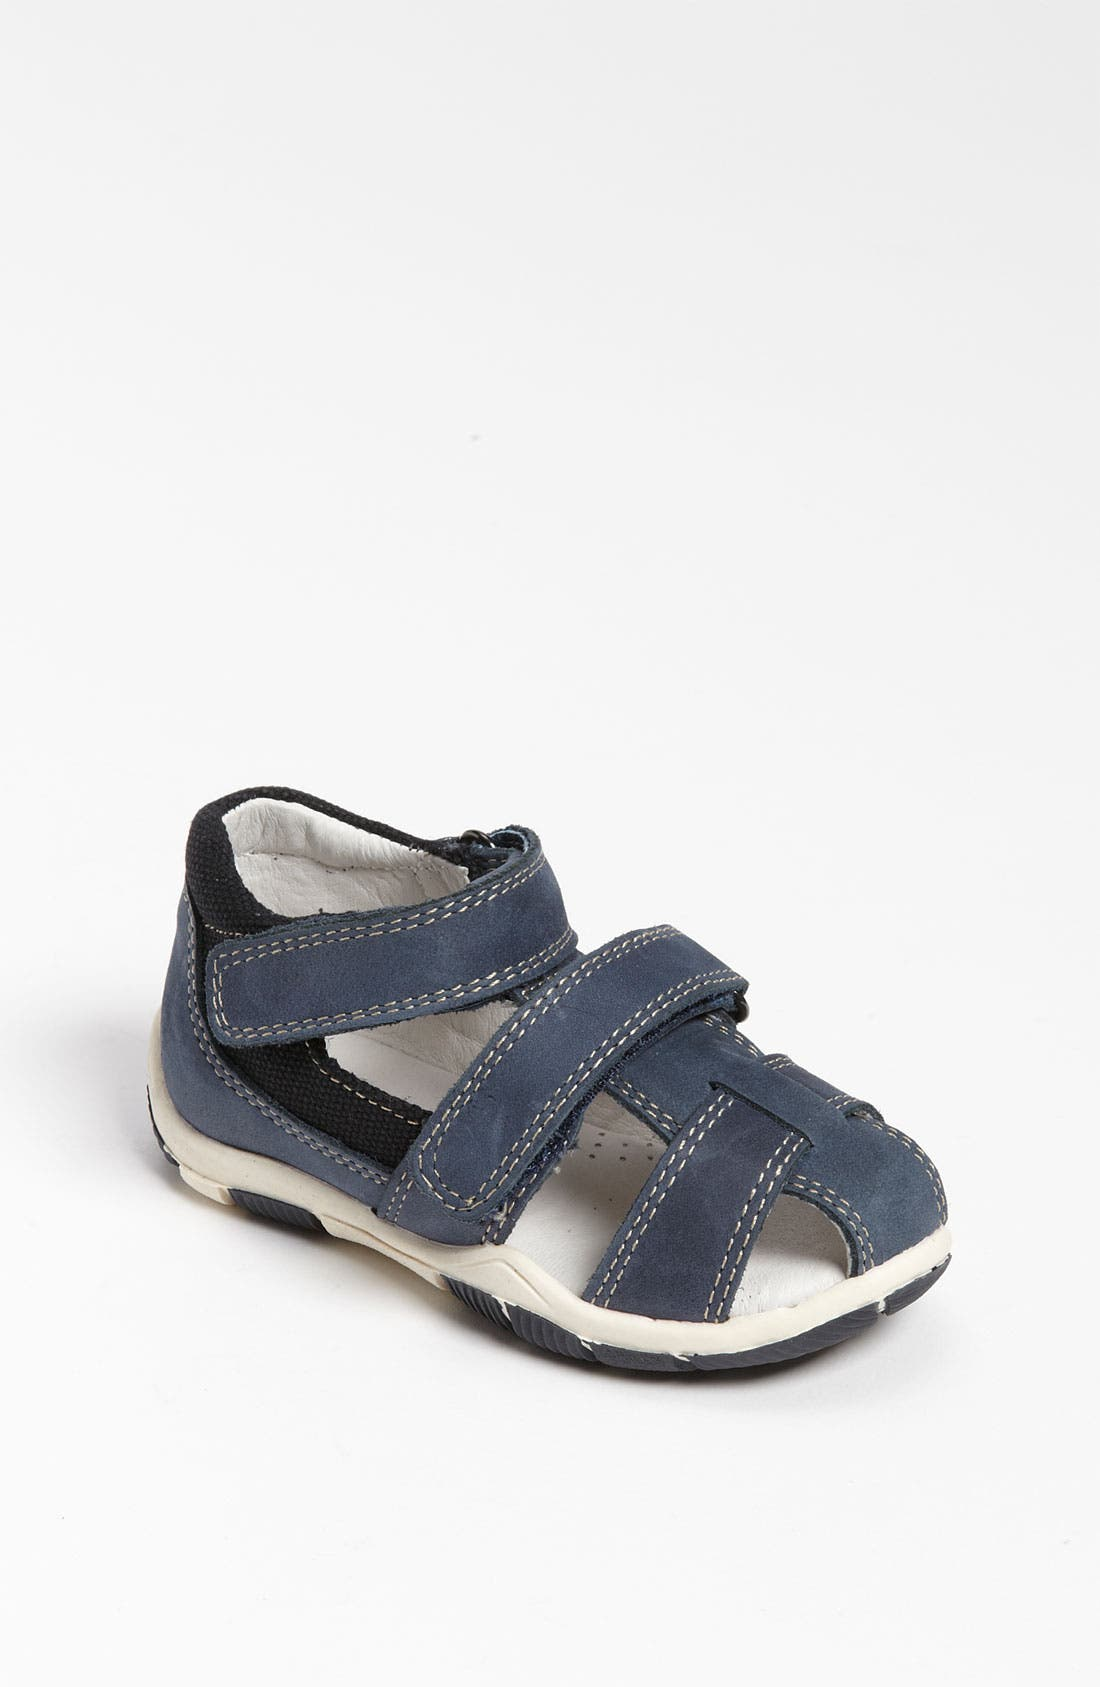 Main Image - Cole Haan 'Air Luca' Fisherman Sandal (Walker & Toddler)